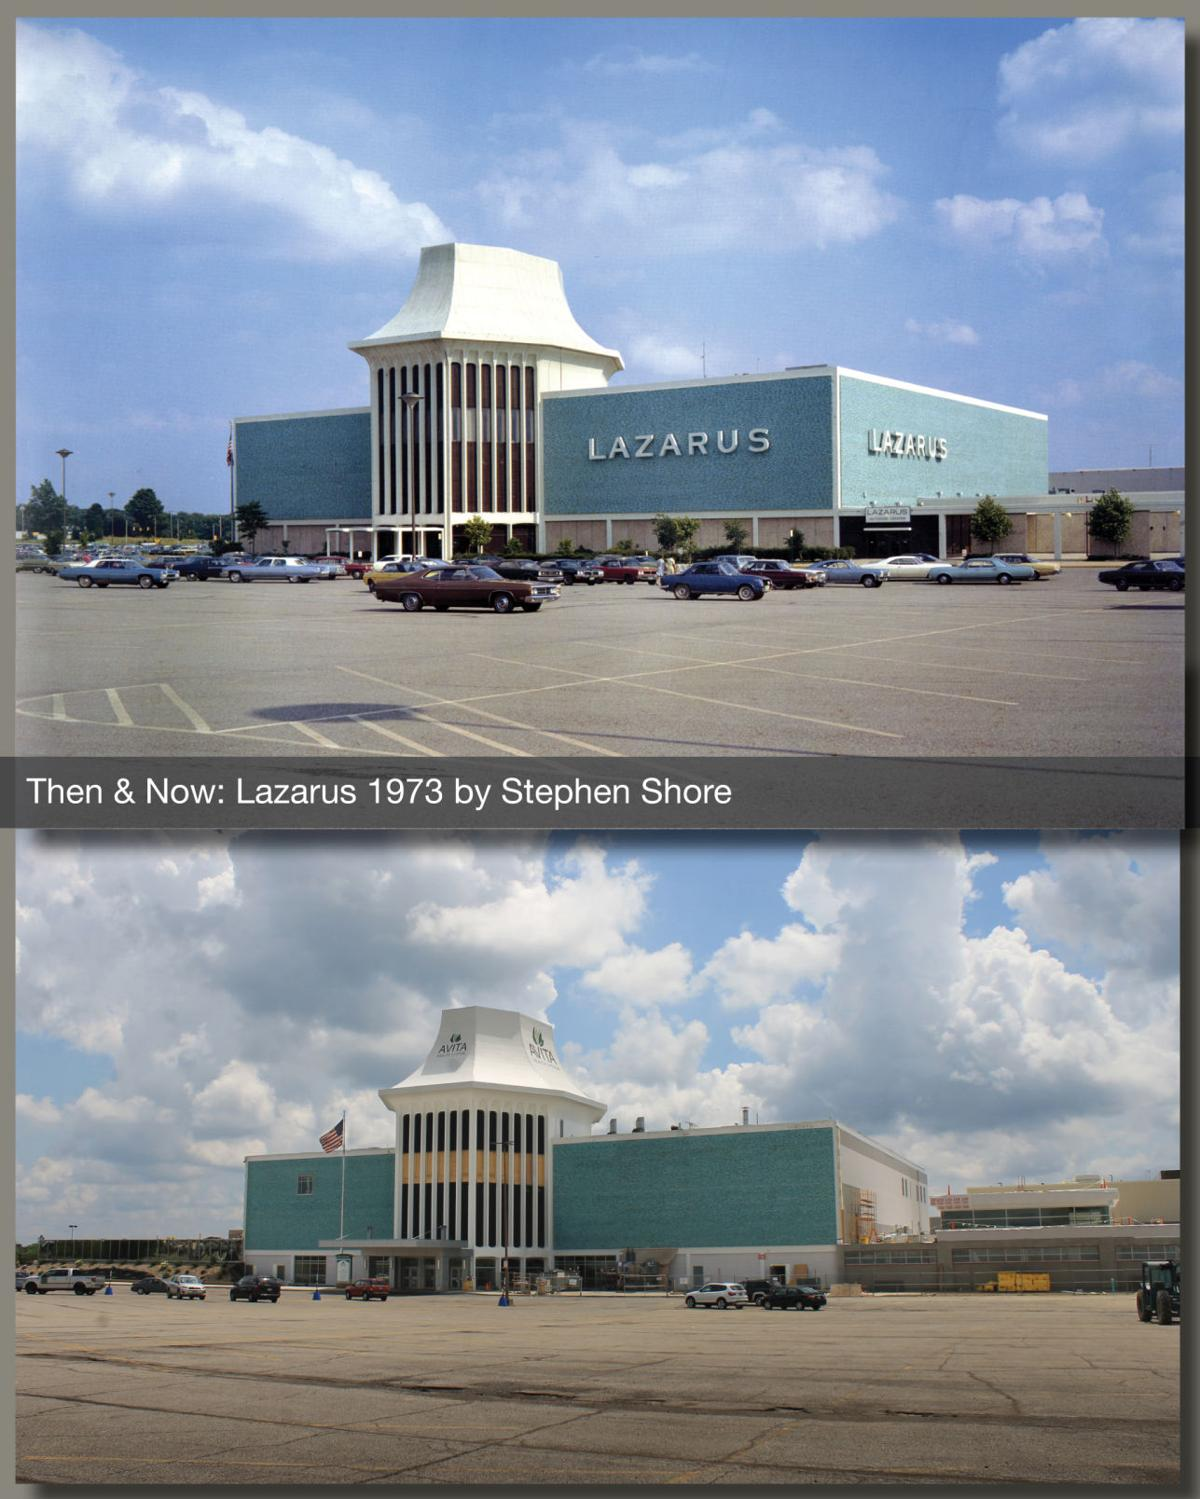 Then & Now: Lazarus at Richland Mall in 1973